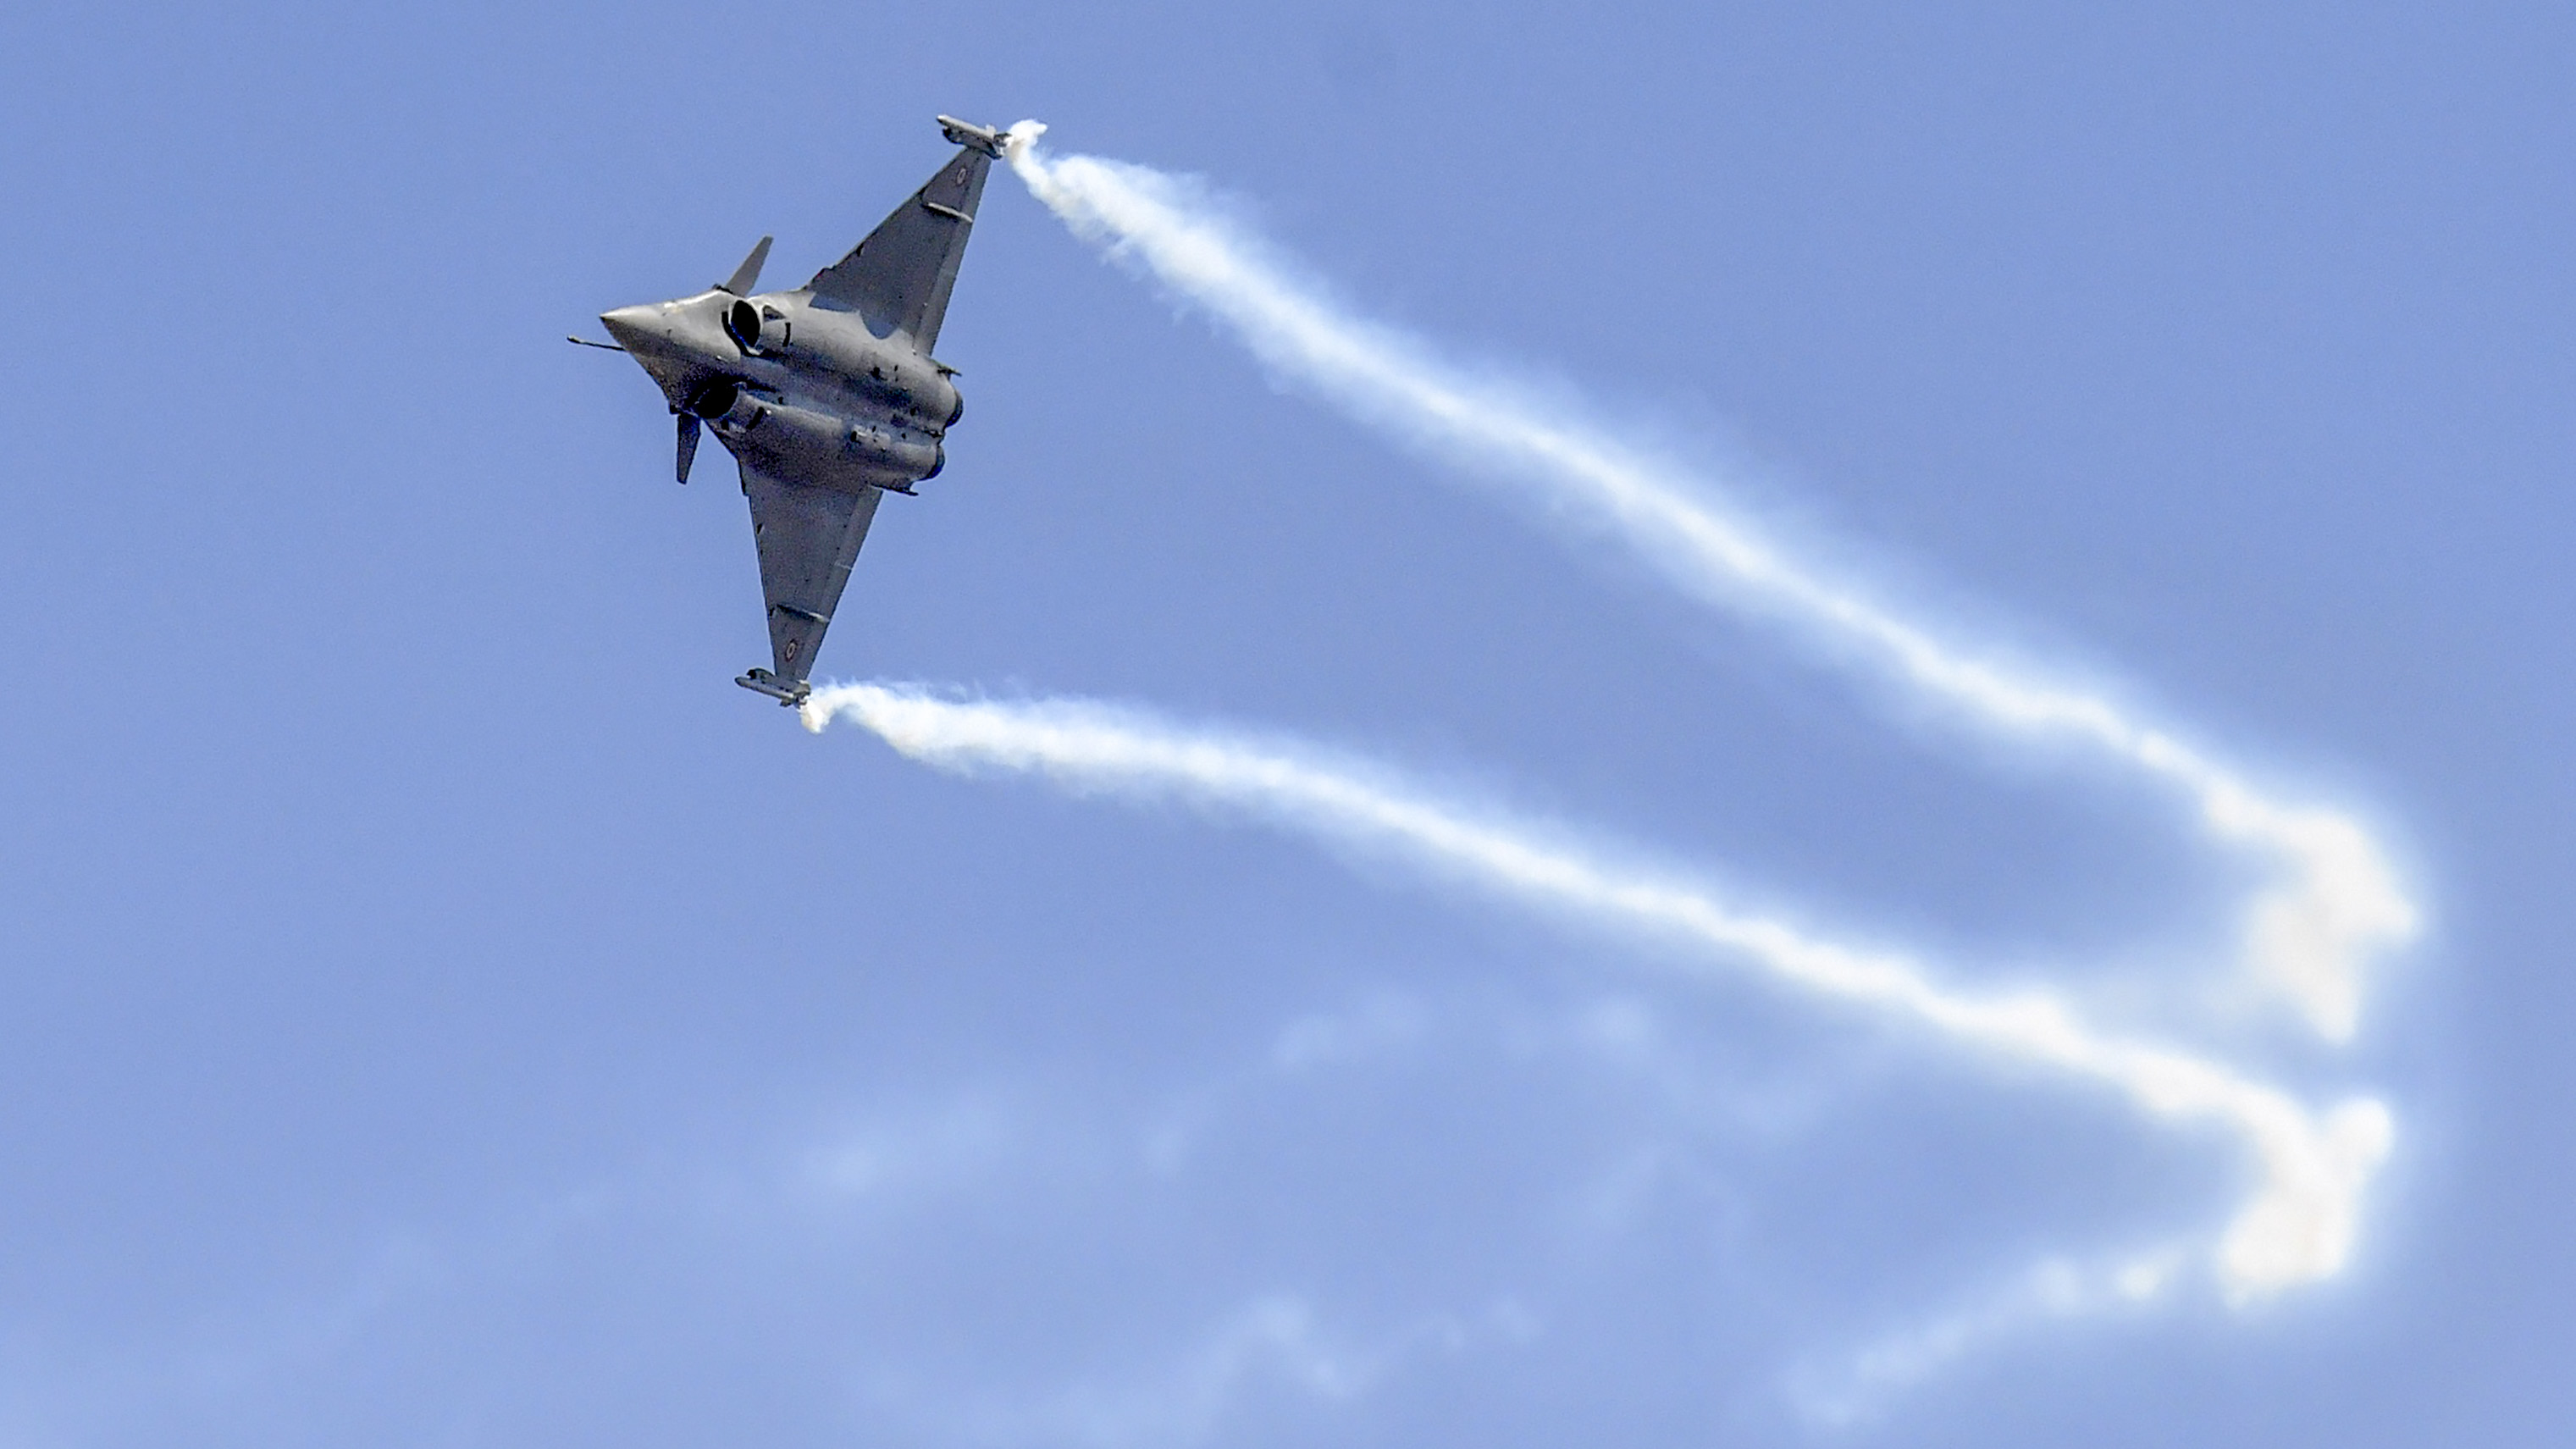 The controversial French-made Rafale fighter aircraft performs a maneuver during a rehearsal at the Yelahanka Air Force Station in Bangalore on February 18, 2019, ahead of the 12th edition of India's biennial international Air Show. - Three Rafale fighters participate in the biennial International Aero India Air Show from February 20 to 24, an official said on February 14. (MANJUNATH KIRAN/AFP/Getty Images)